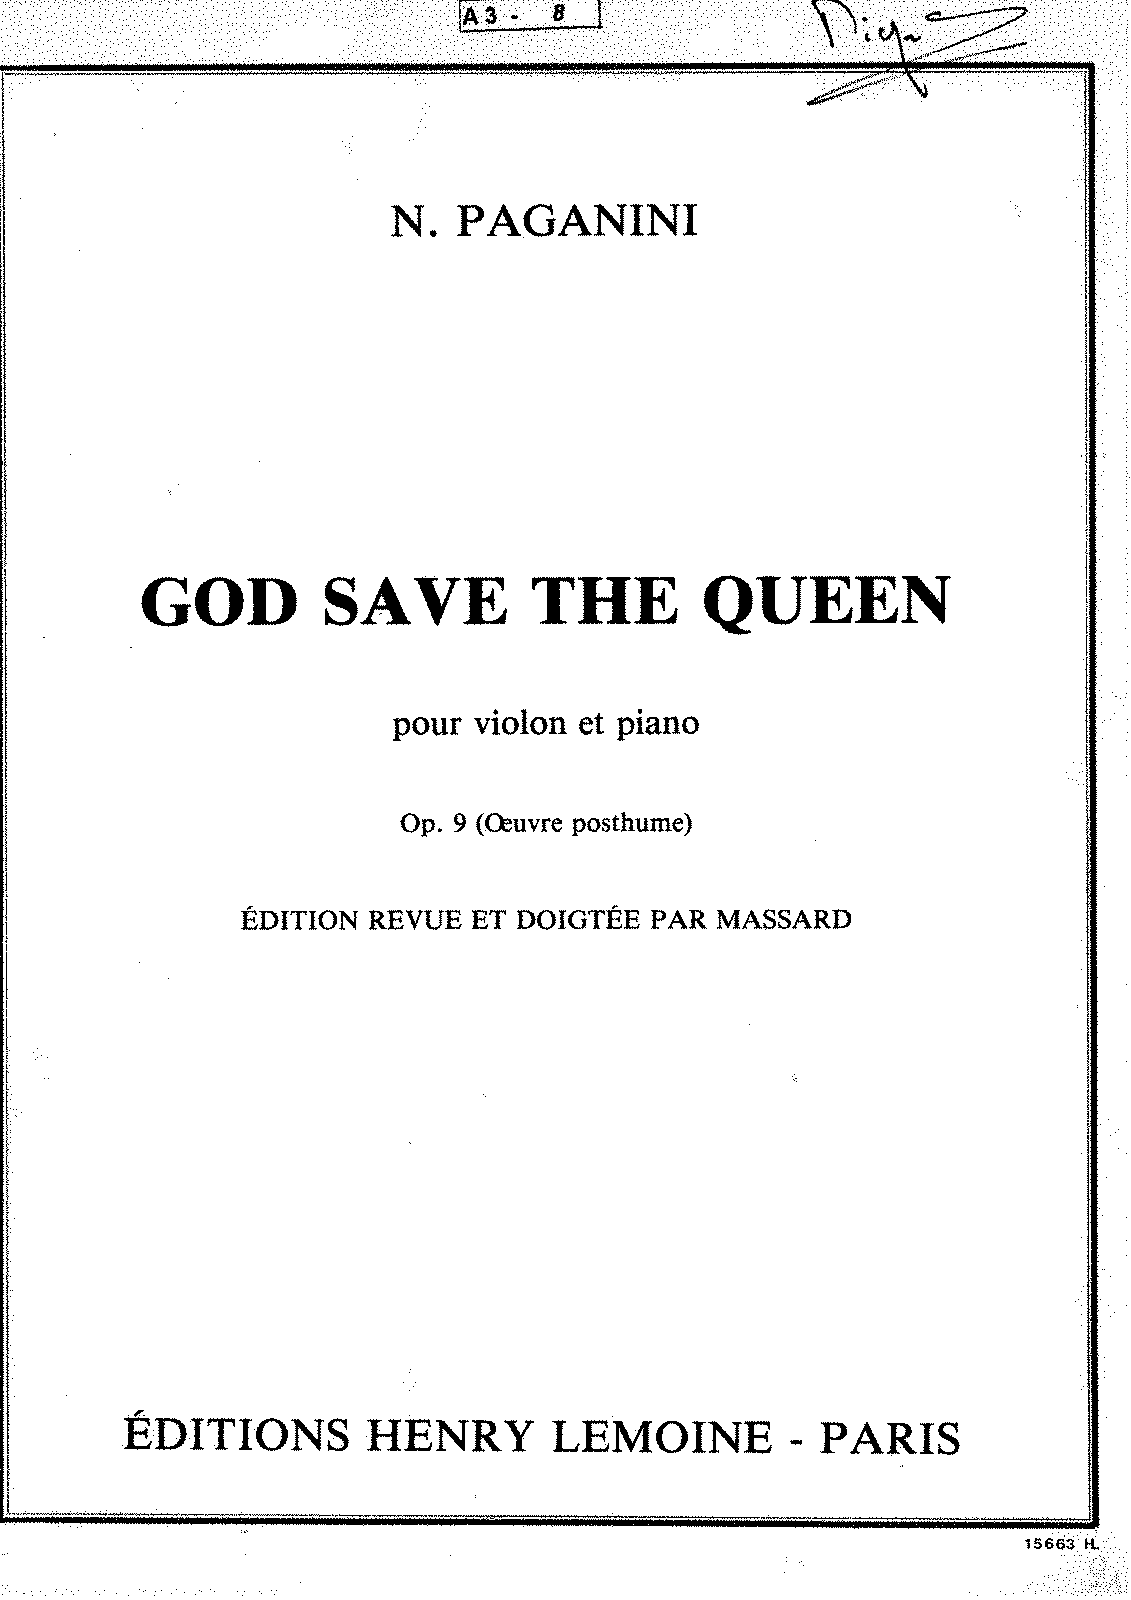 PMLP91843-Paganini god save the queen op9 (piano).pdf